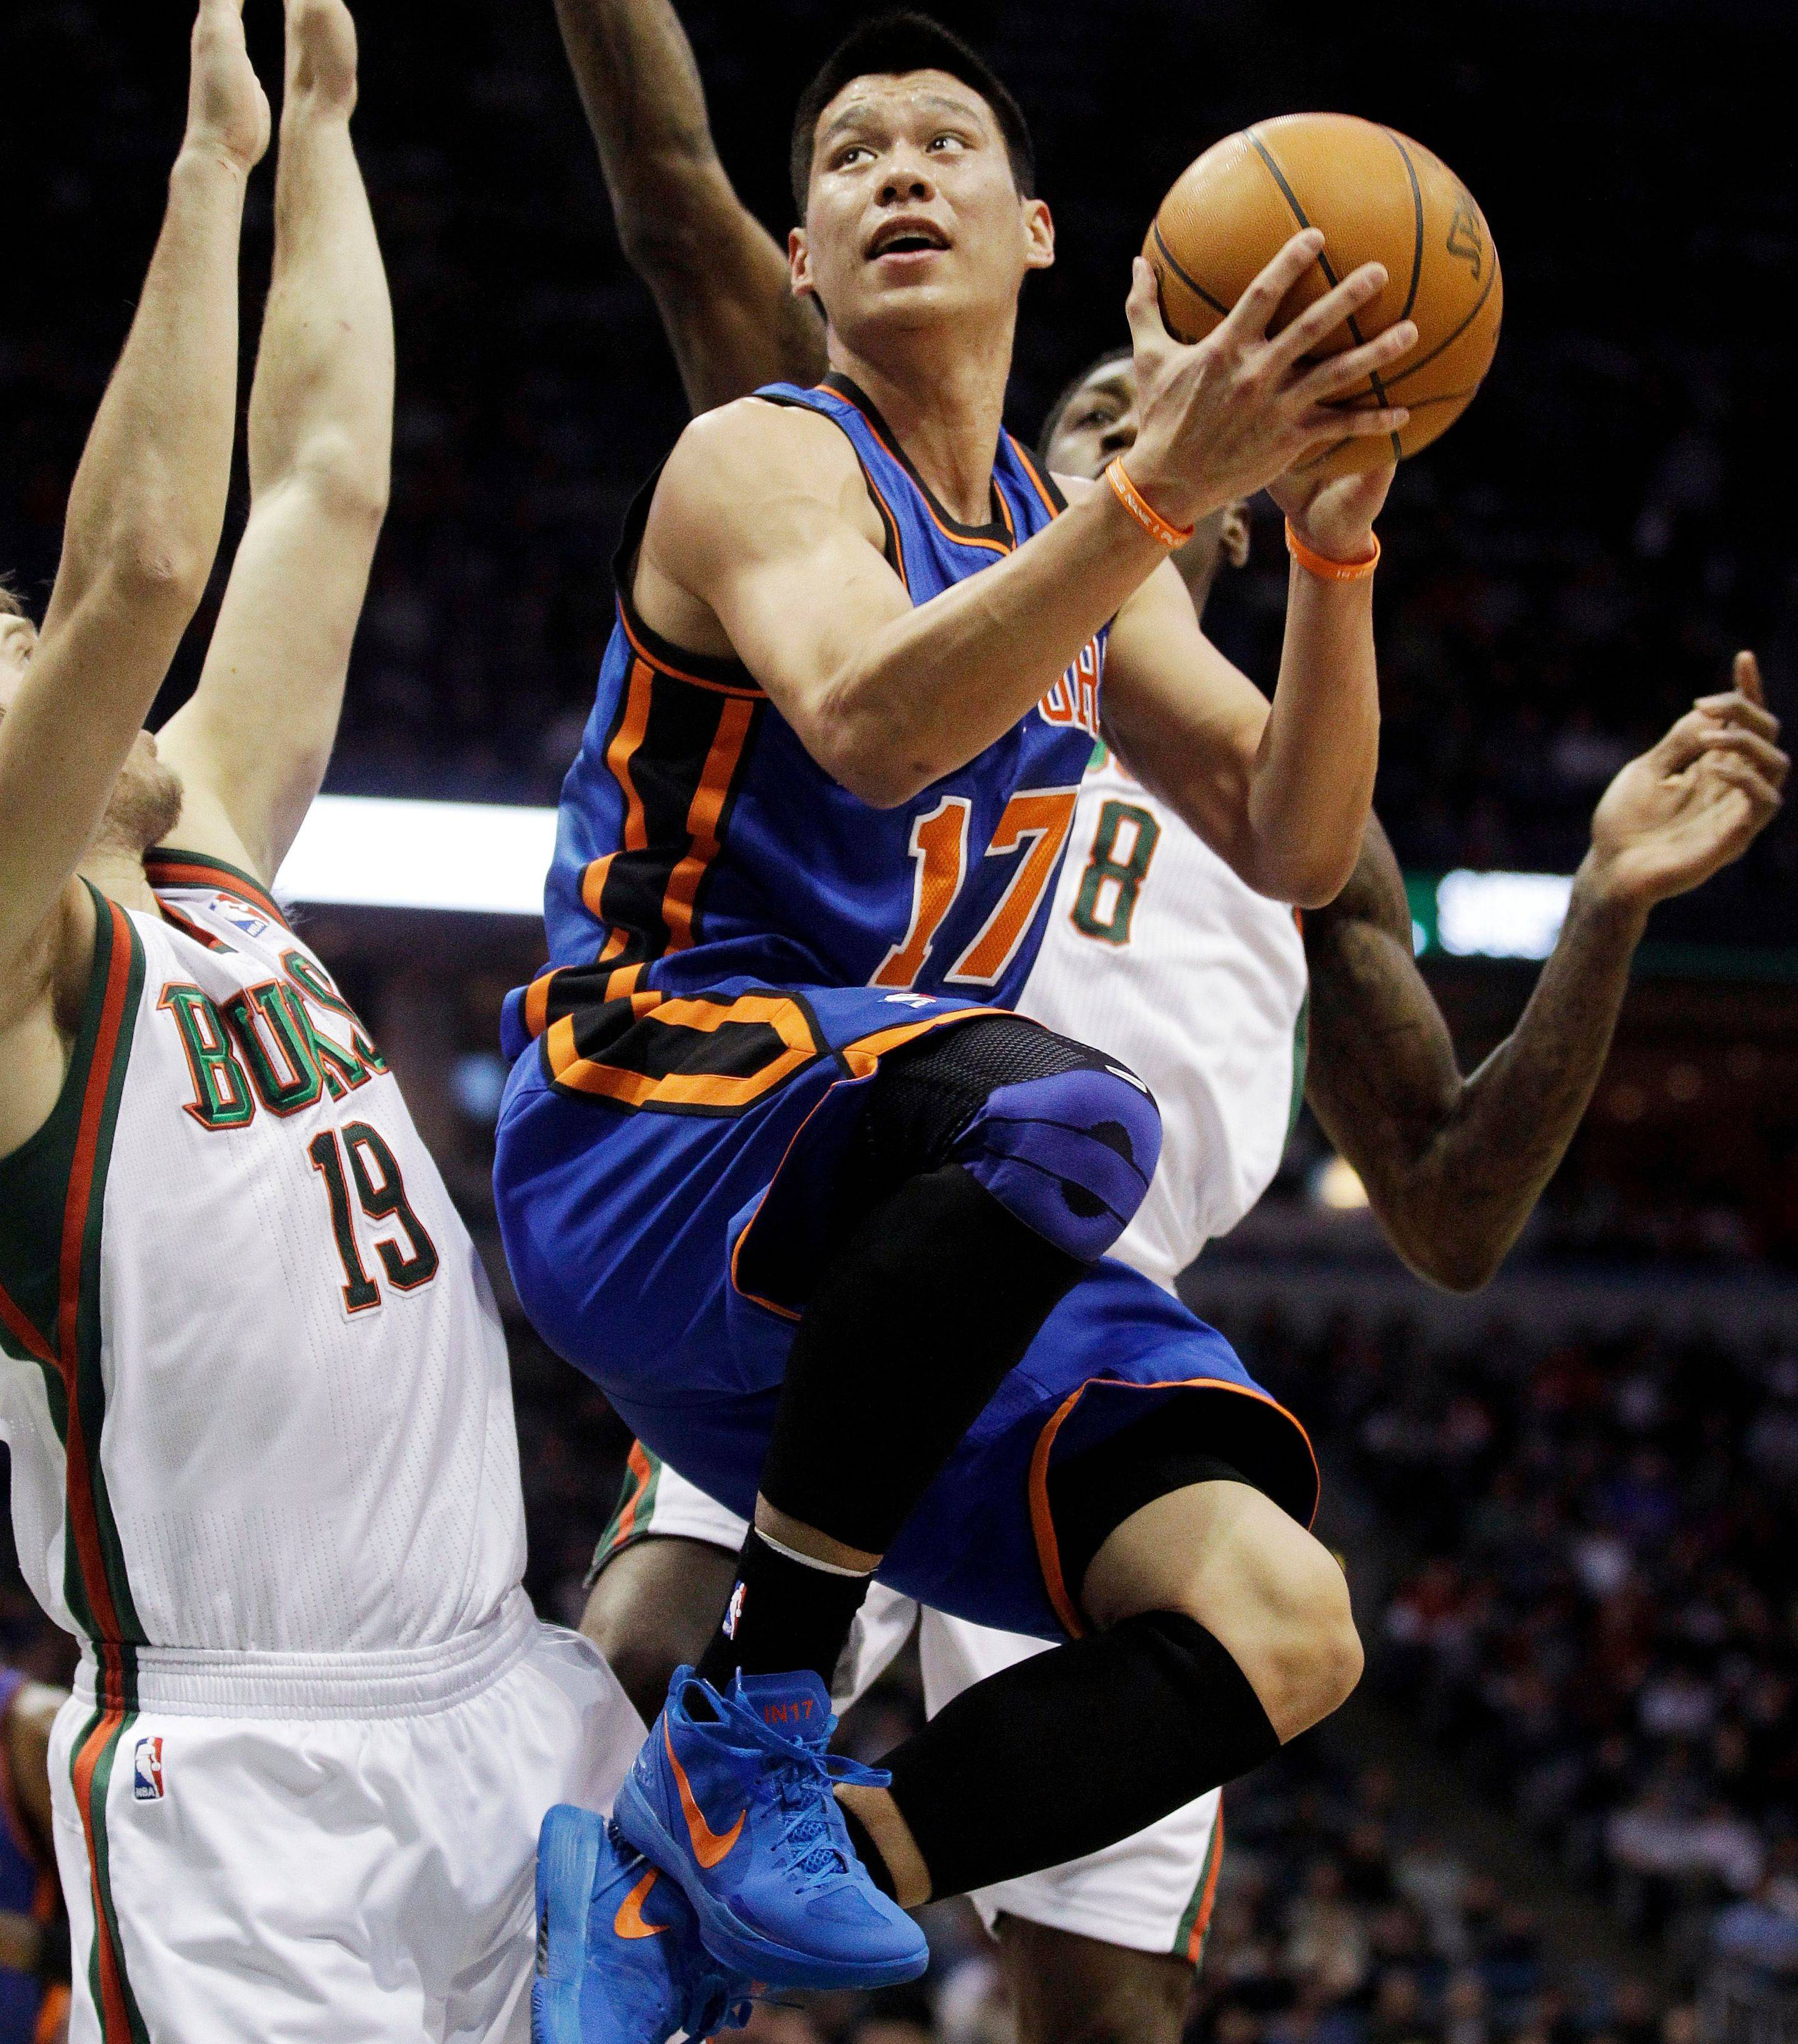 For Knicks guard Jeremy Lin, things have quieted quite a bit with the hype coming out of New York.